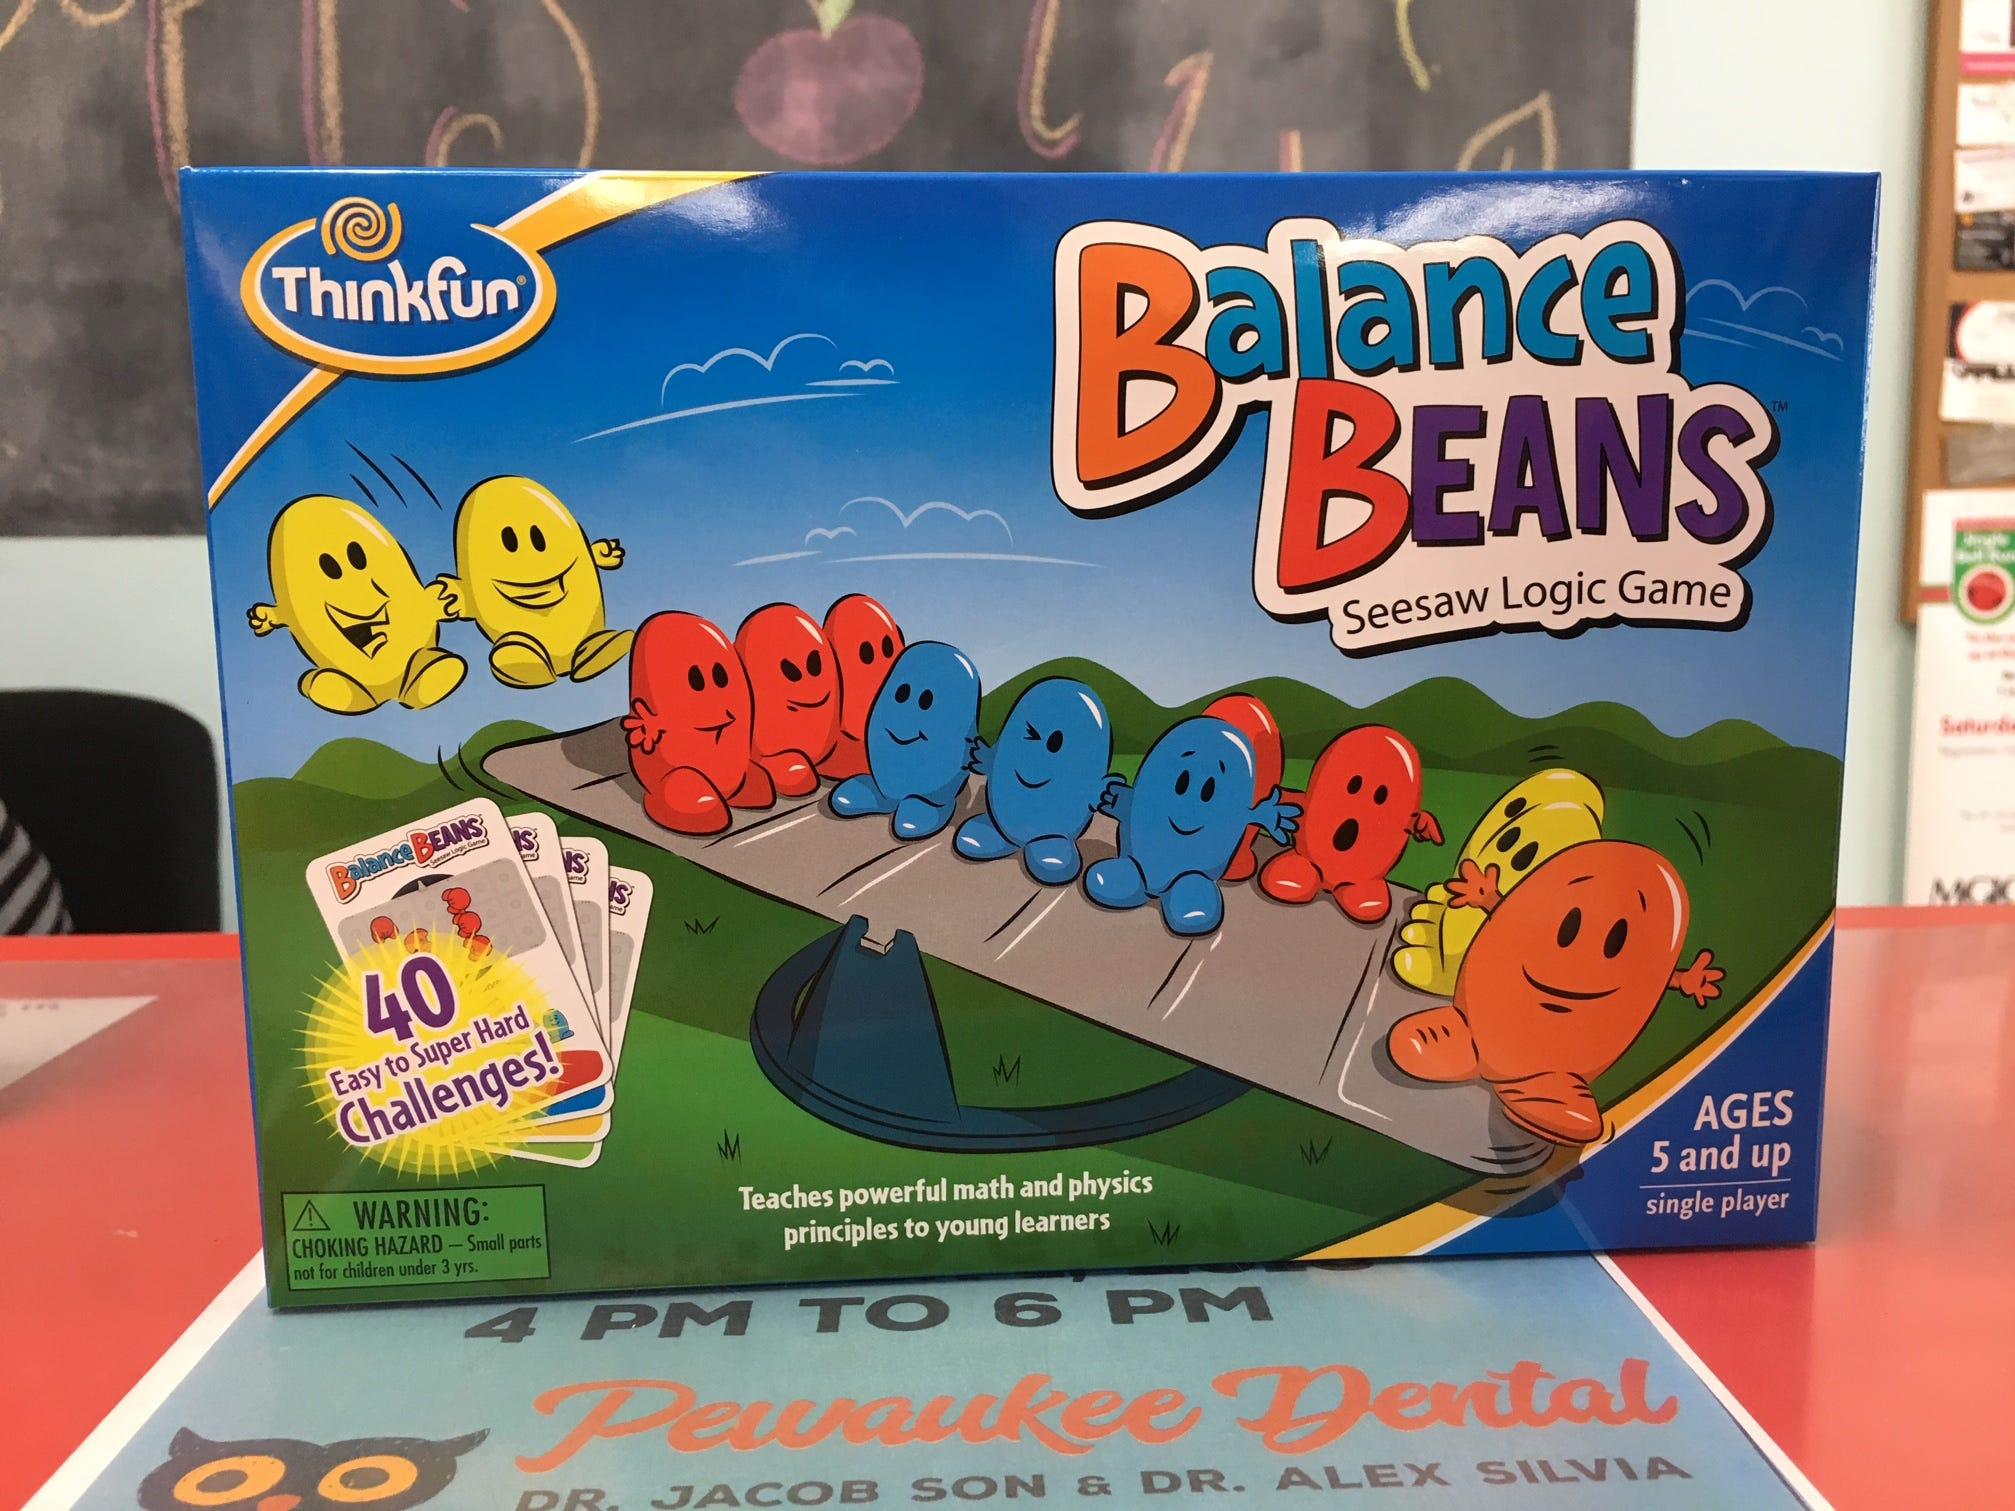 Think Fun games live up to their name by teaching kids as they have fun. Silly Willyz in Pewaukee sells them, including Balance Beans, where players learn about balancing equations by placing different-colored beans on different sides of a seesaw.